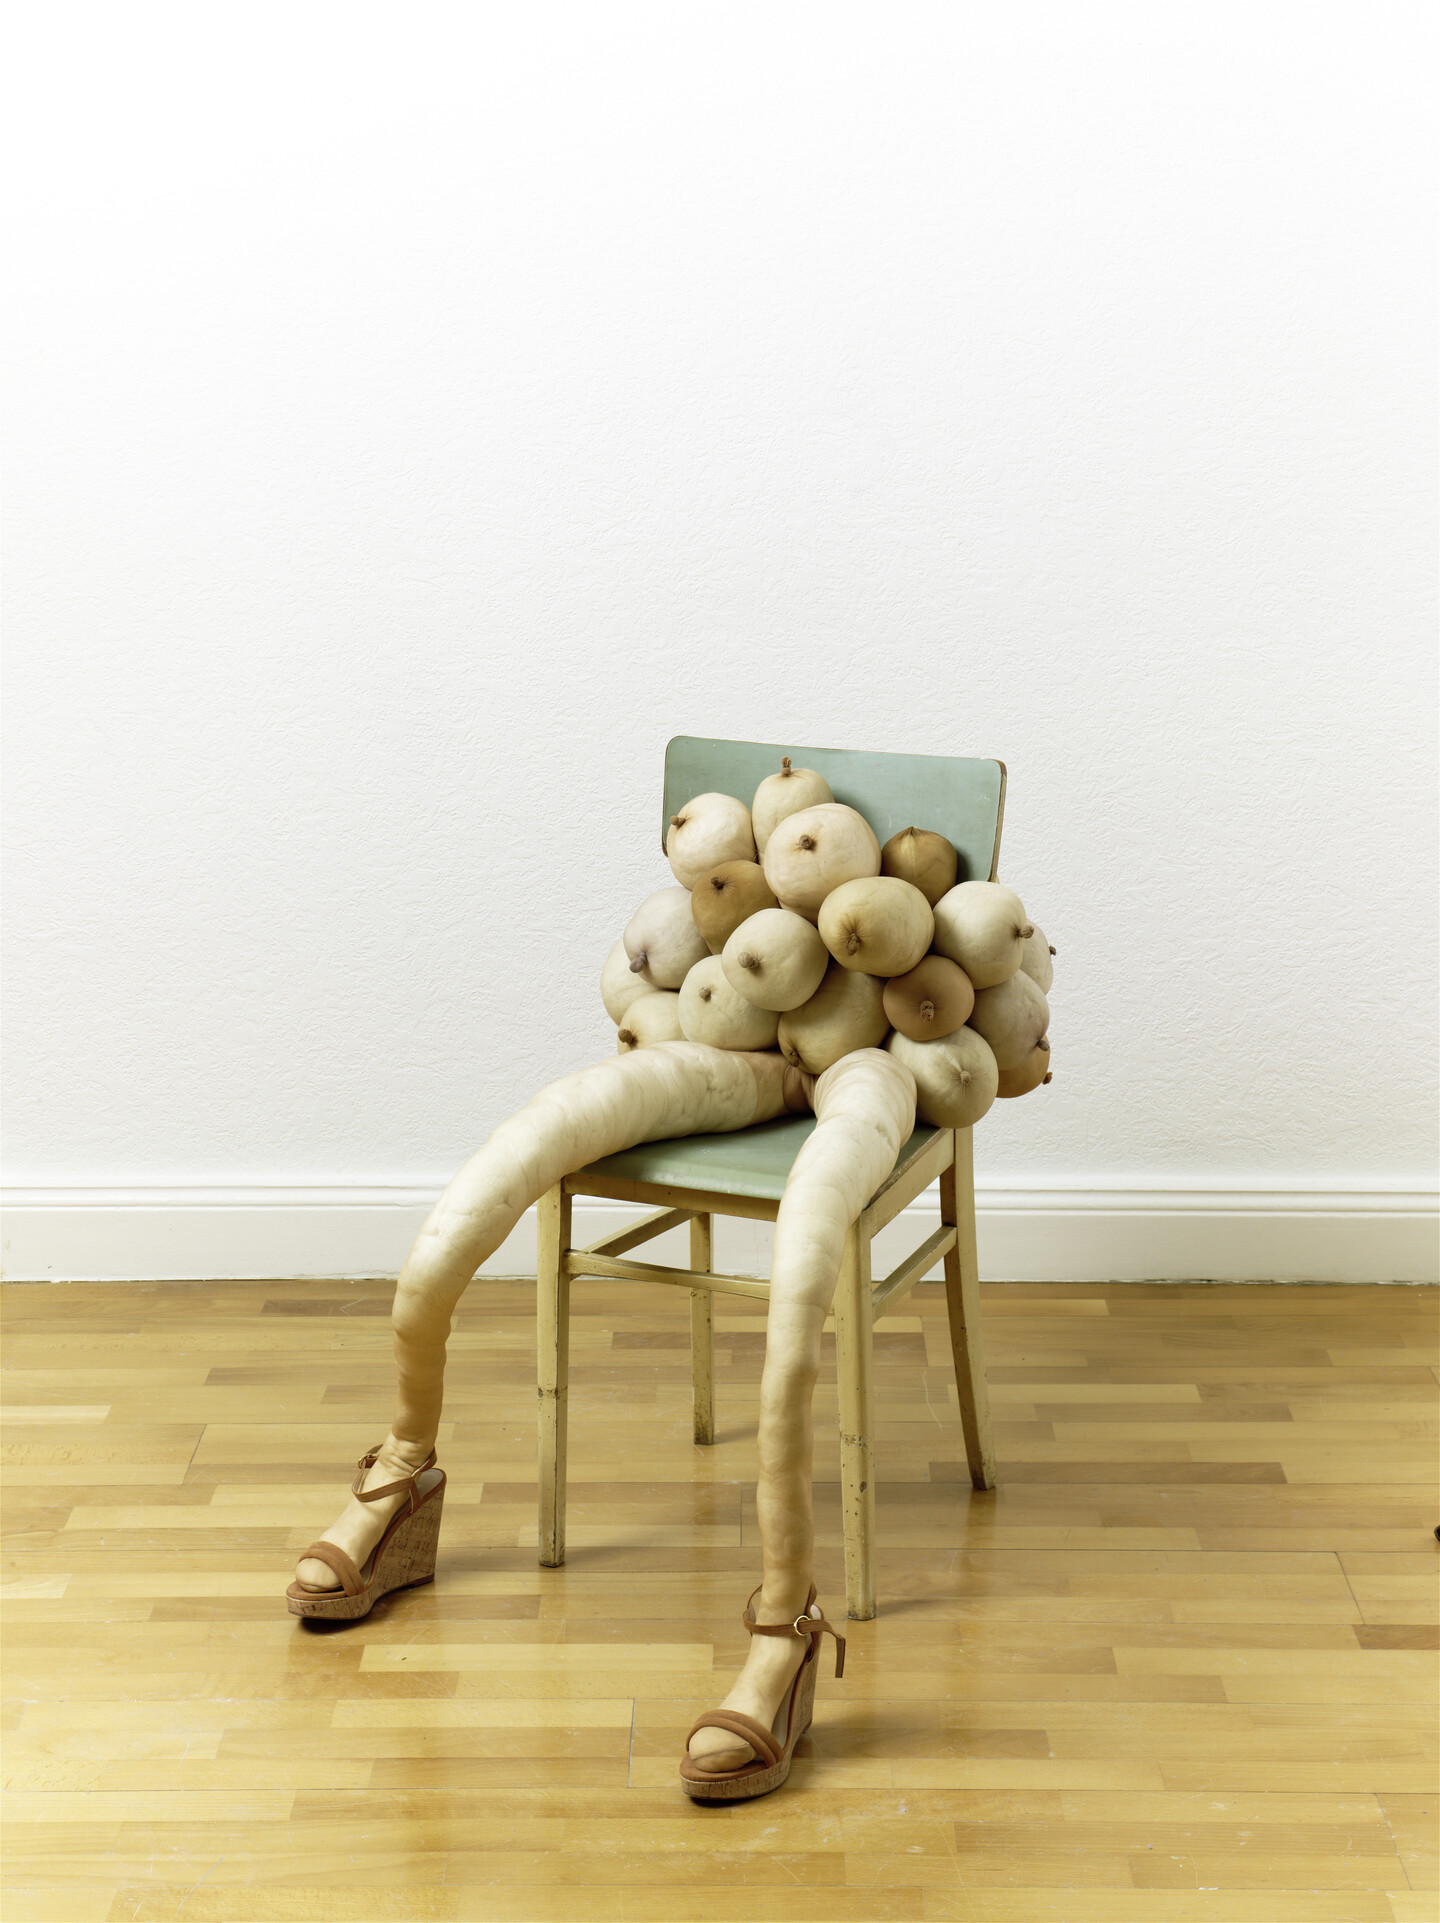 lucas world of furniture. Sarah Lucas, Titti Doris, 2017. Courtesy Of Lucas And Contemporary Fine Arts, Berlin - Charlottenburg. Image The Arts Museums San World Furniture